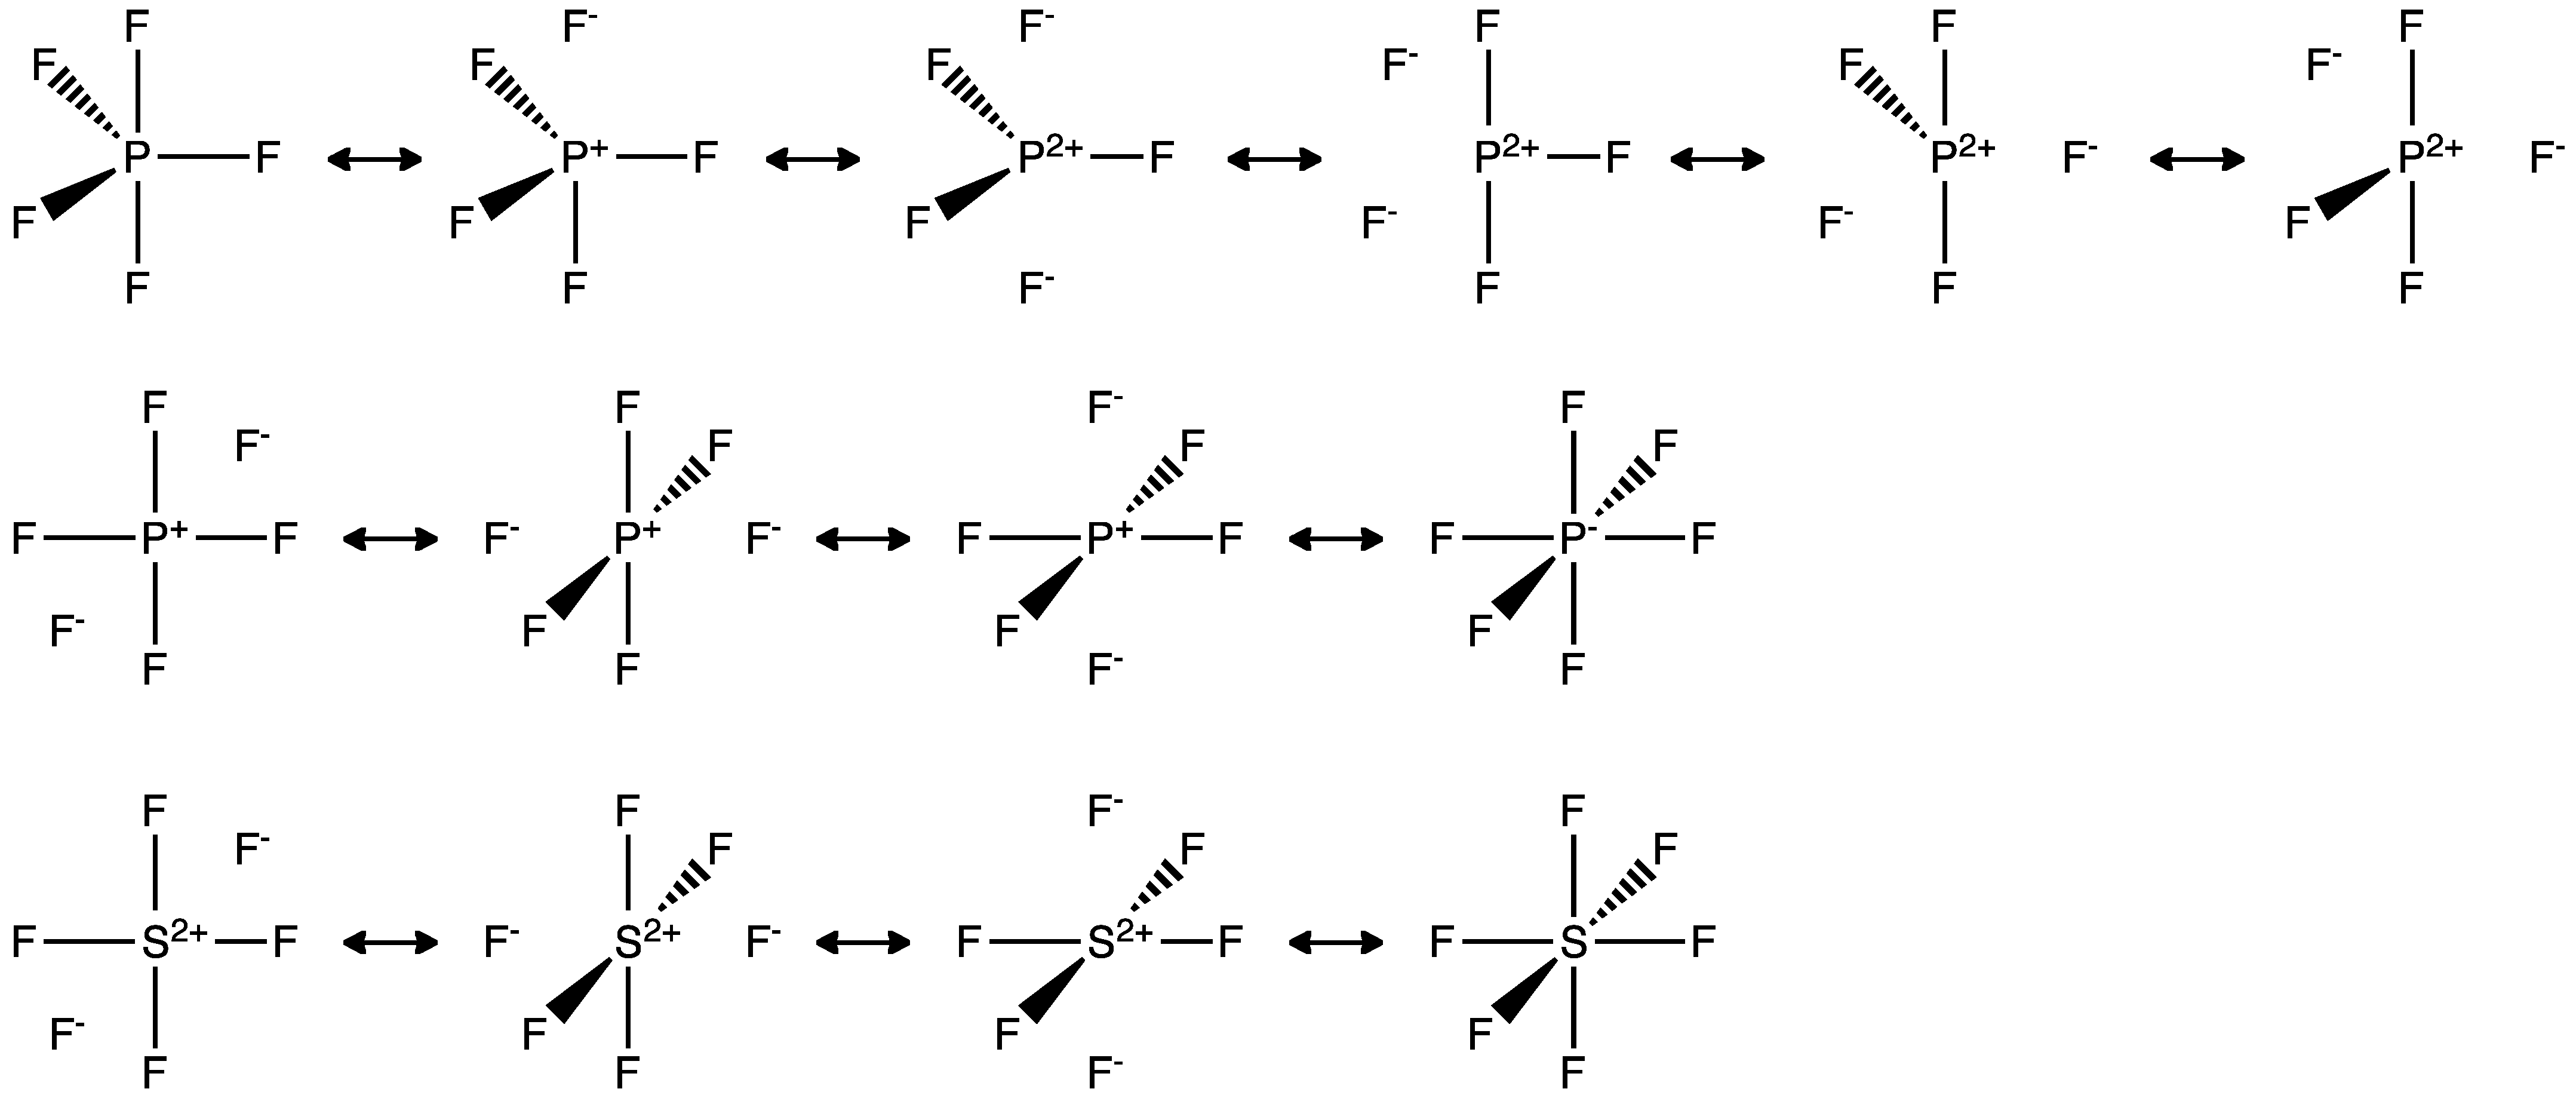 Pf6 Lewis Structure Related Keywords - Pf6 Lewis Structure ... H2cnh2 Lewis Structure